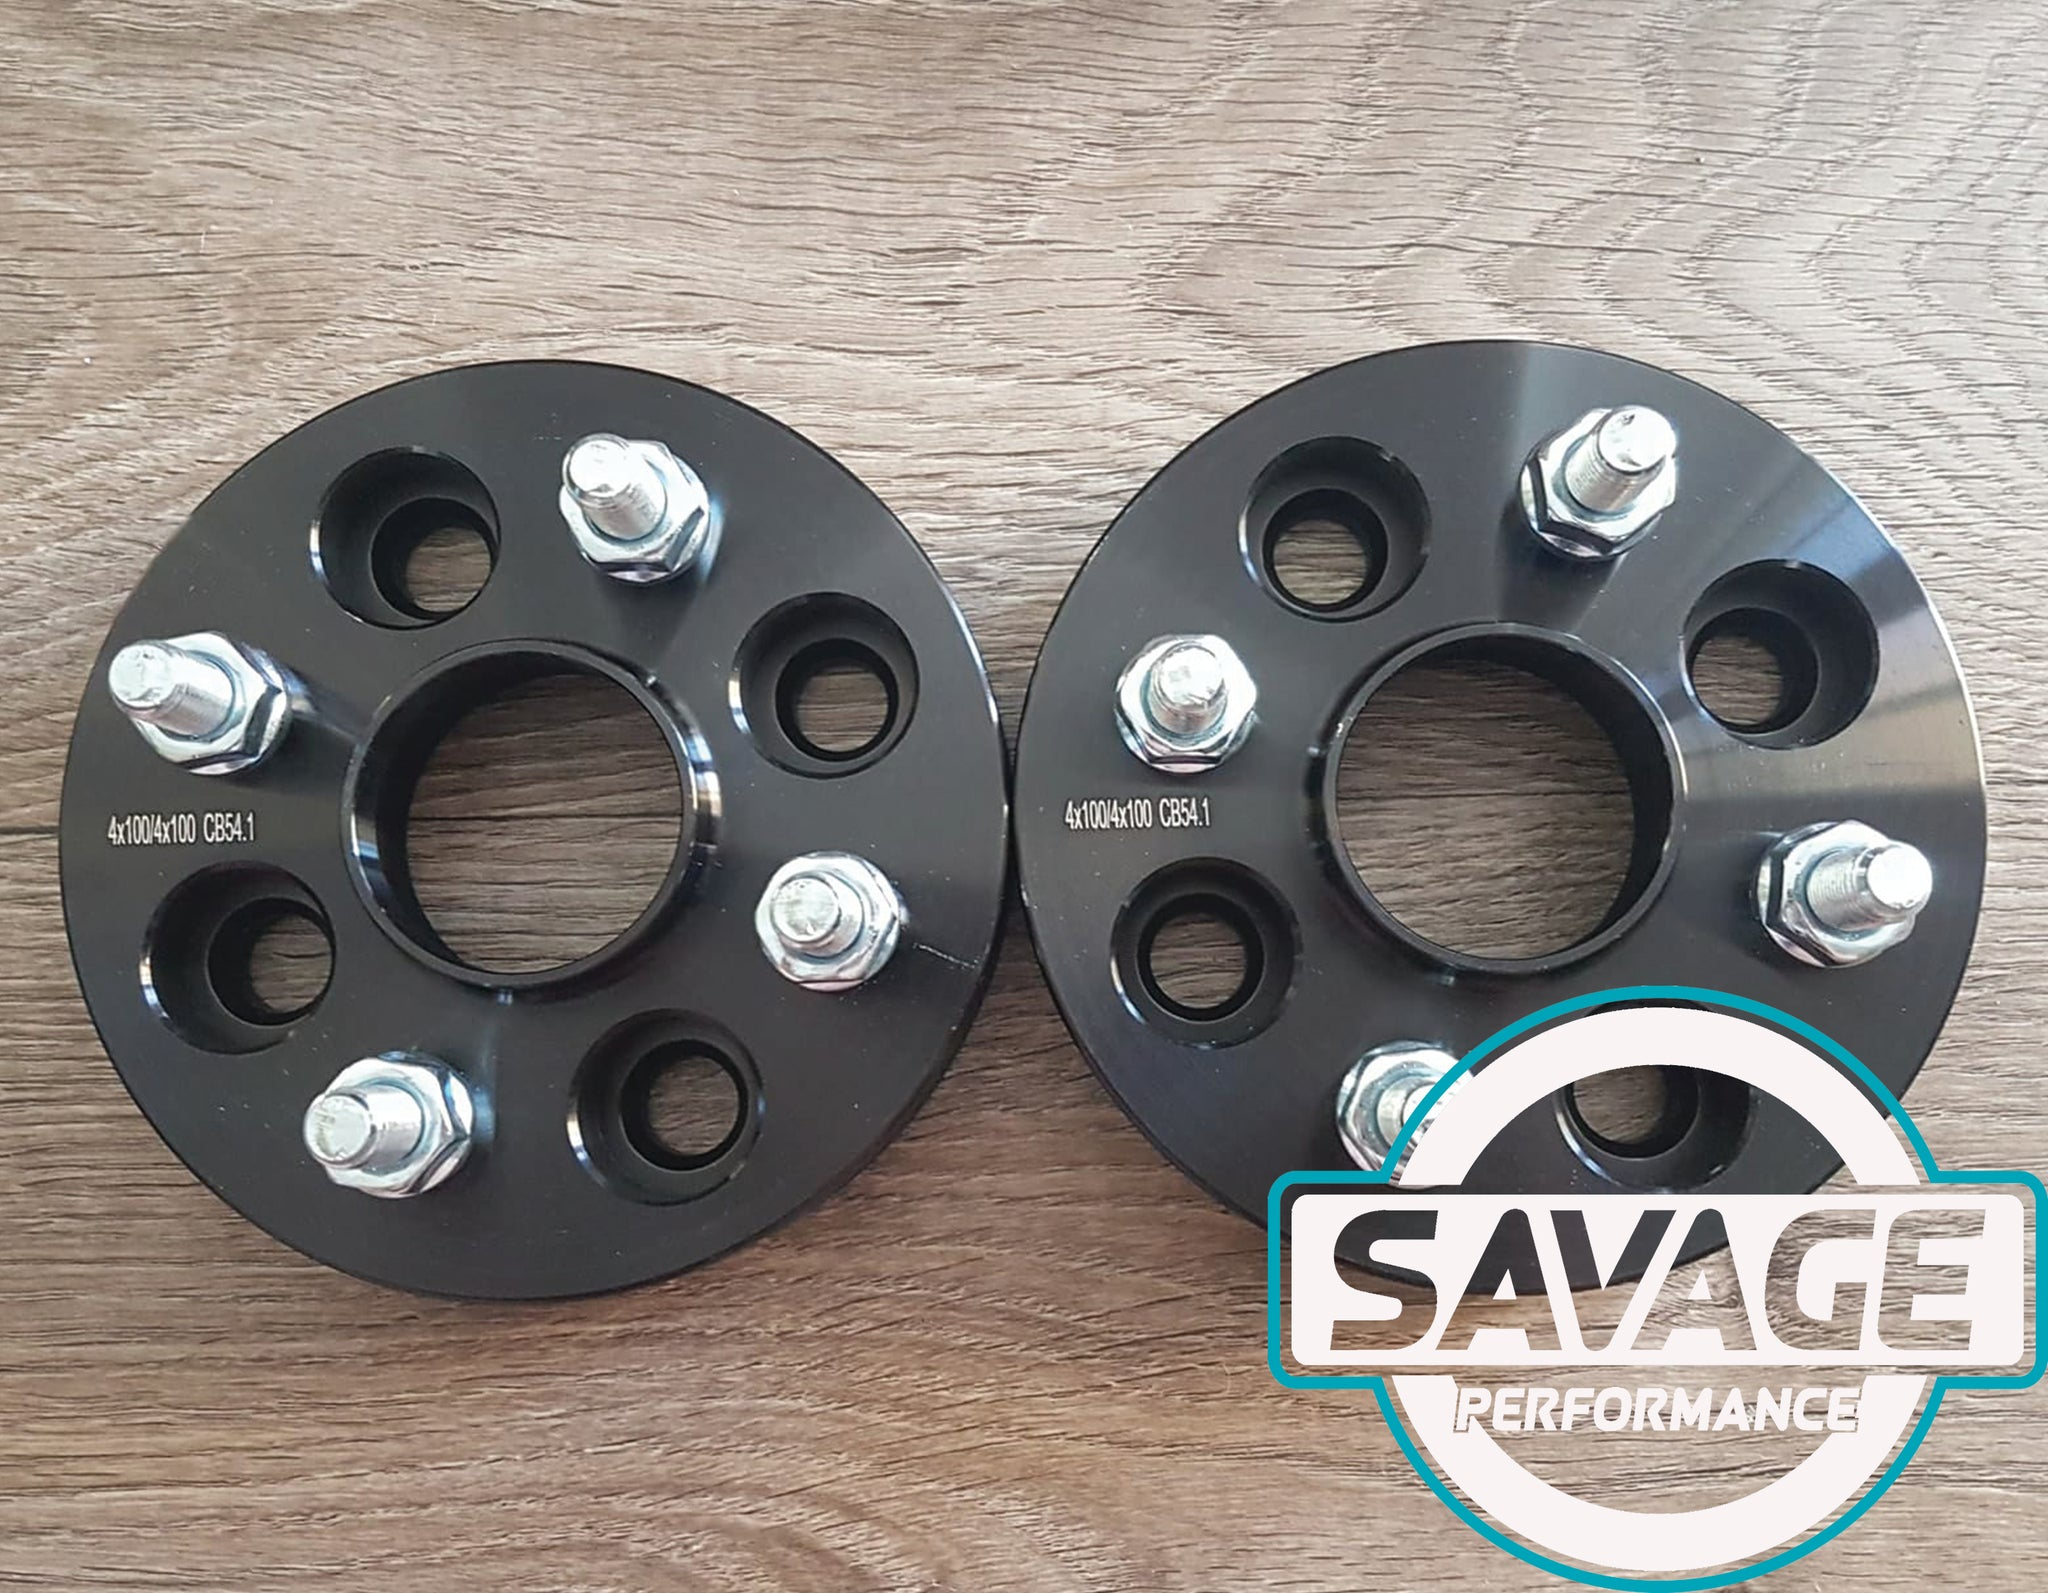 4x100 20mm Wheel Spacers suits MAZDA / TOYOTA *Savage Performance*